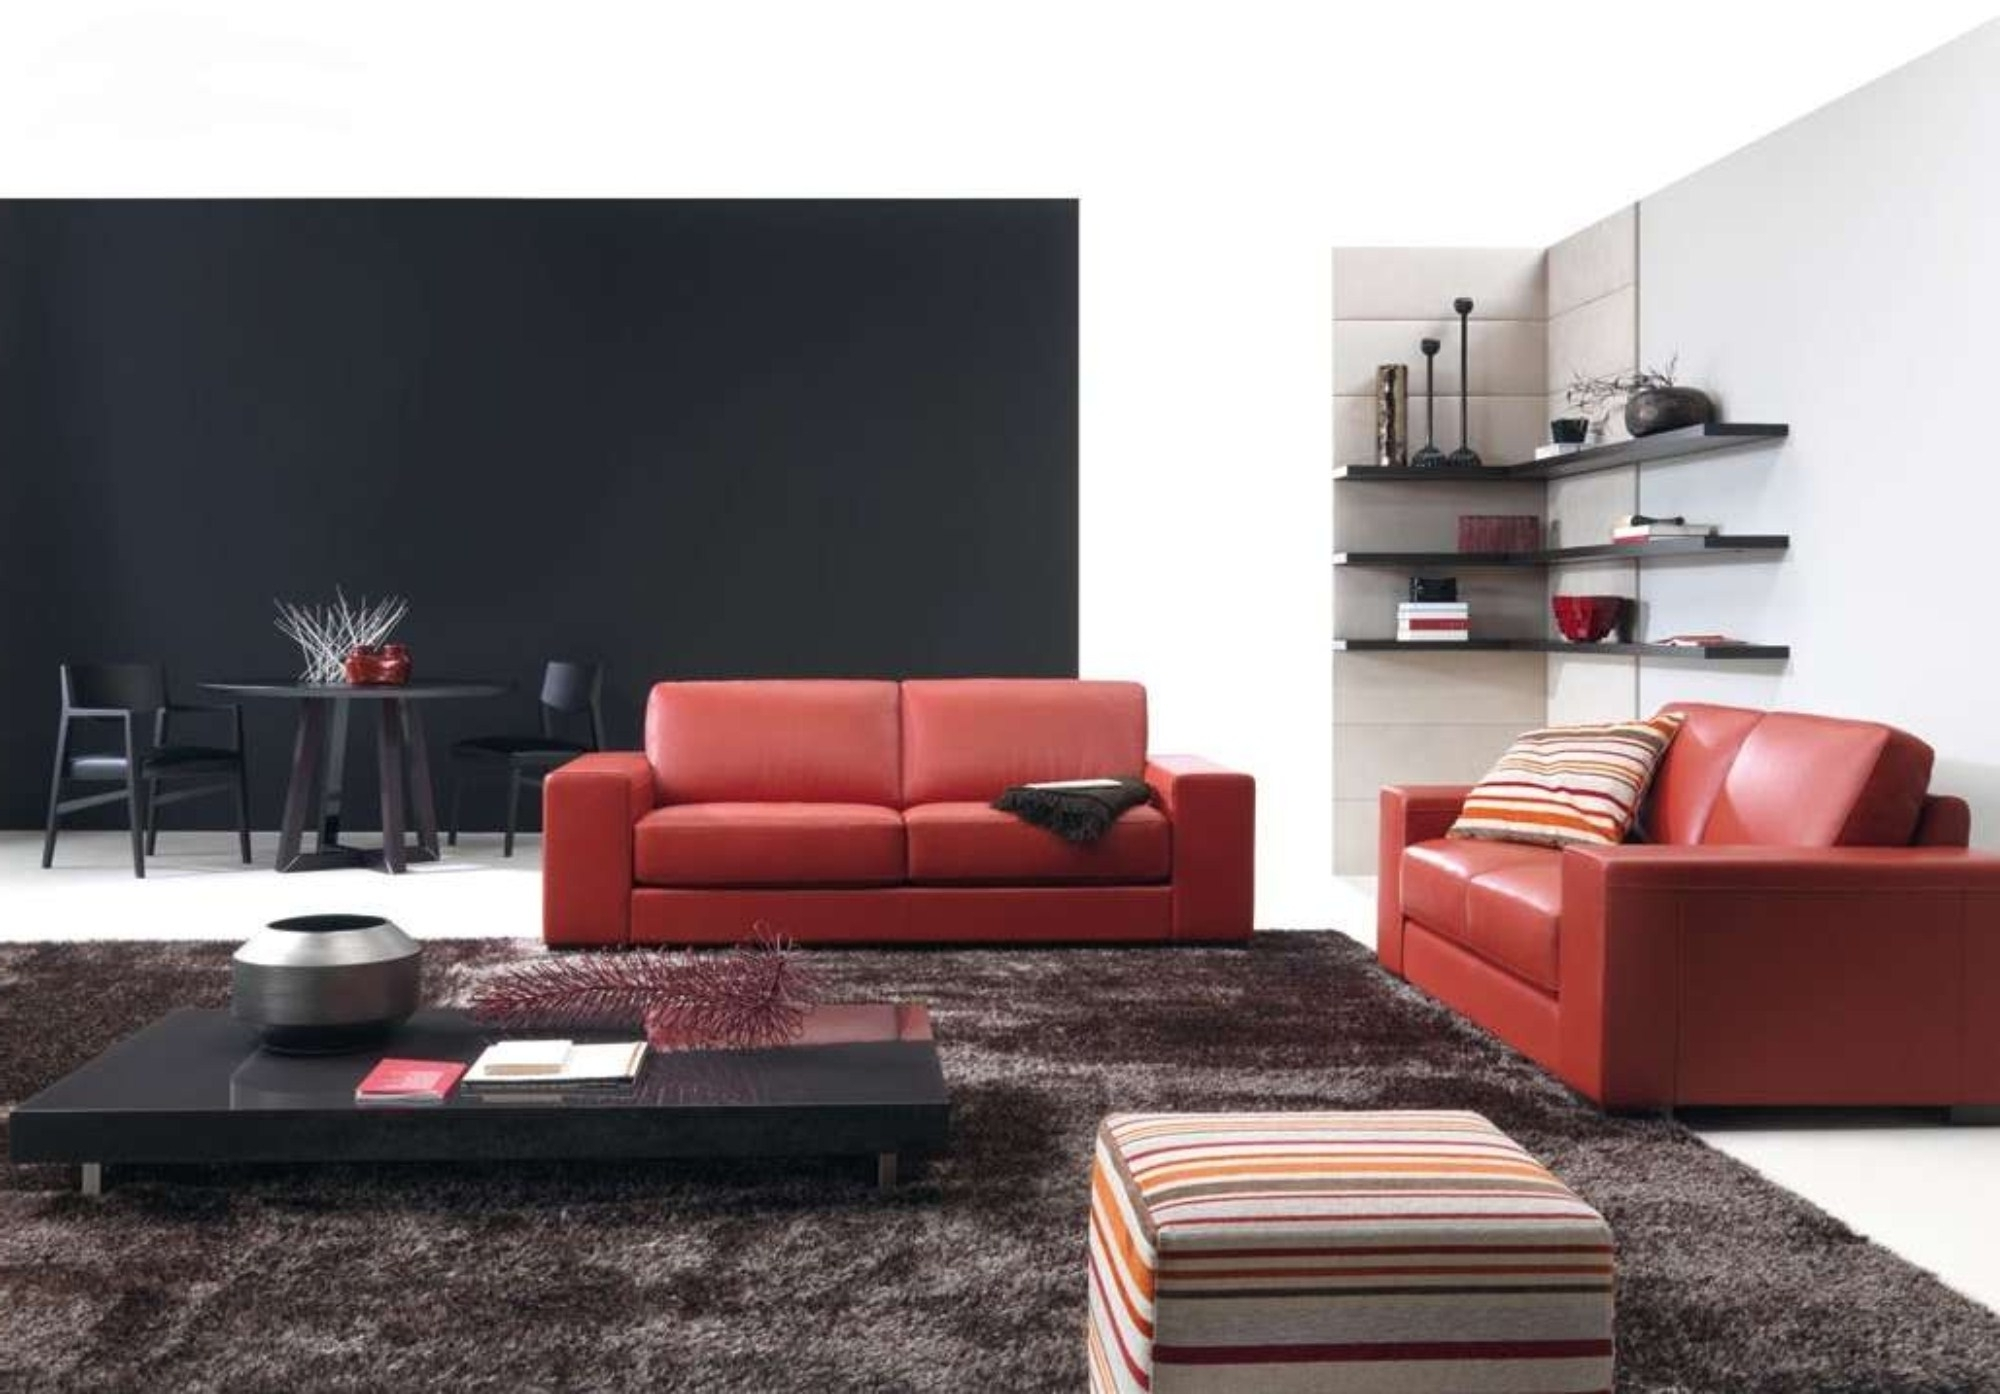 Decorating Ideas Living Room With Red Leather Sofa And Black Wood With Recent Red Leather Couches For Living Room (View 5 of 20)